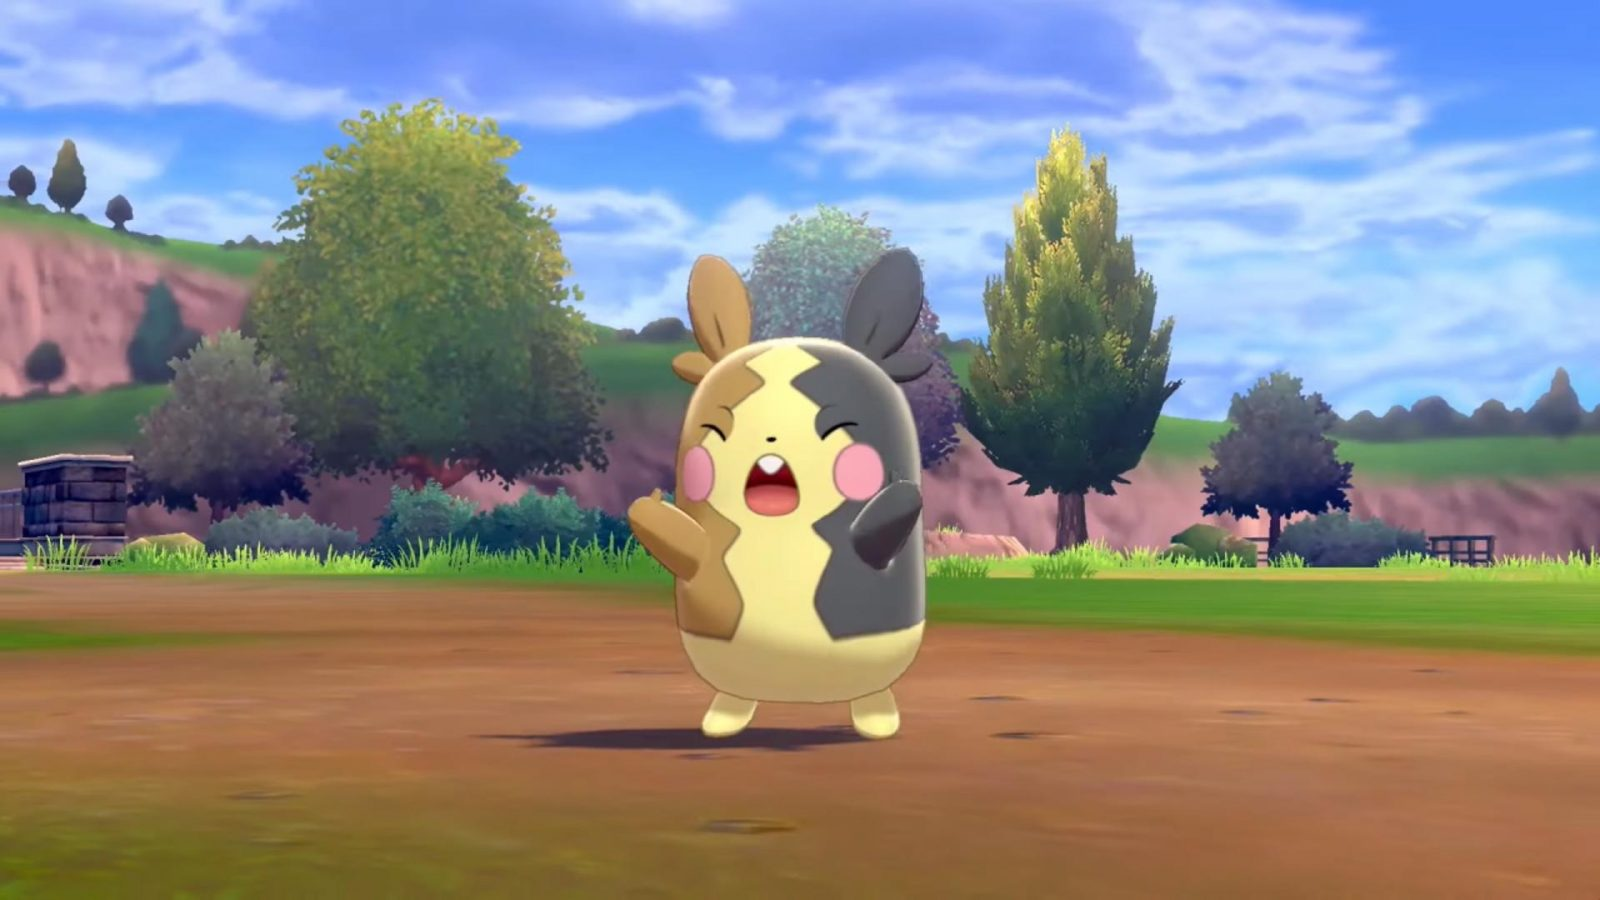 Pokemon Sword and Shield's Director Has a Pretty Simple Explanation for Why Exp. Share is Always On